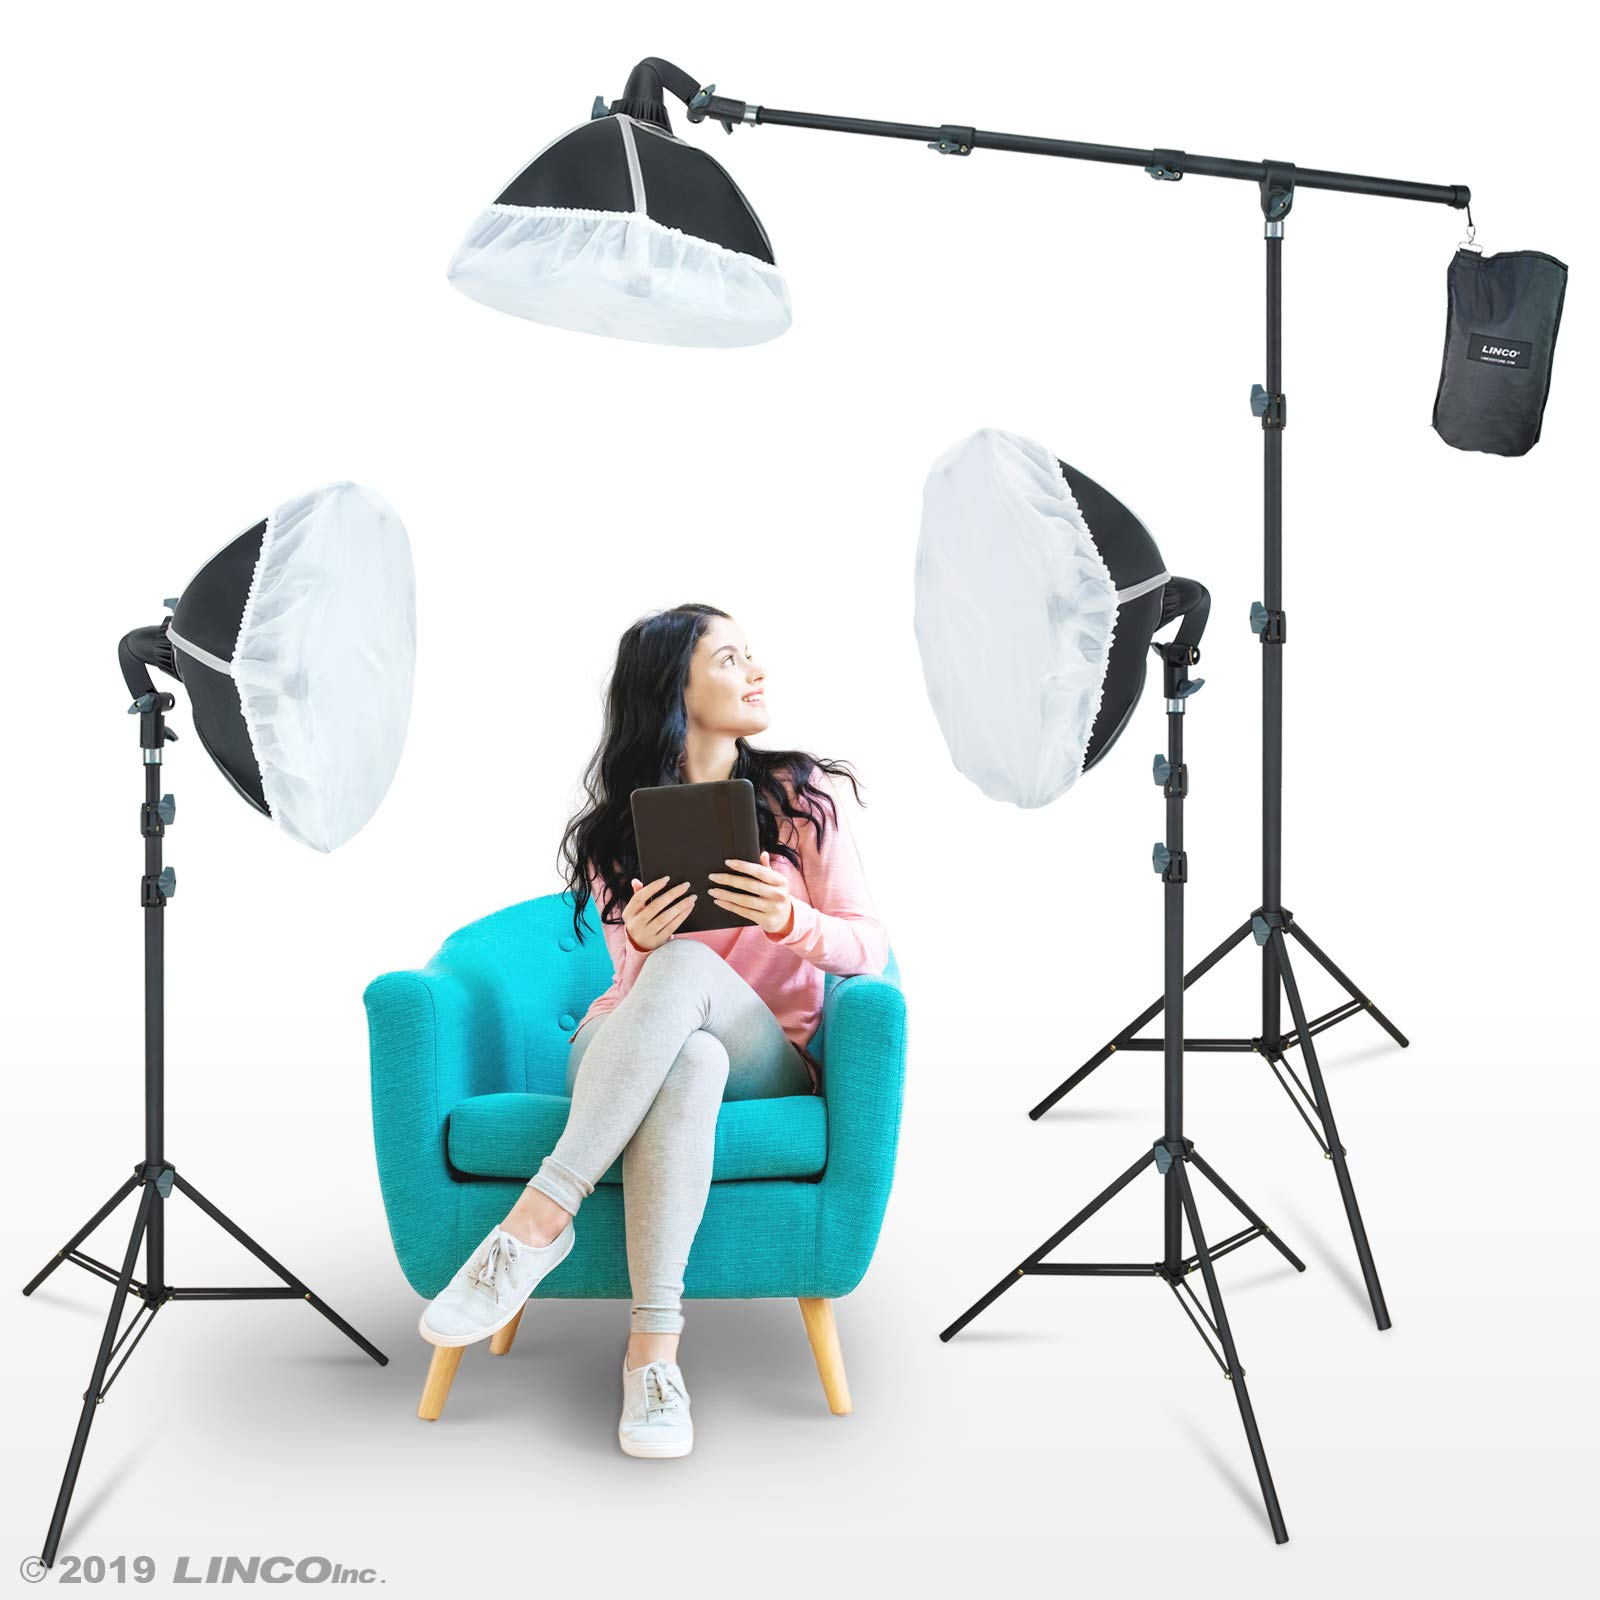 LINCO Lincostore Photography Studio Lighting Kit Arm for Video Continuous Lighting Shadow Boom Box Lights Set Headlight Softbox Setup with Daylight Bulbs 2400 Lumens AM261 by Linco (Image #8)